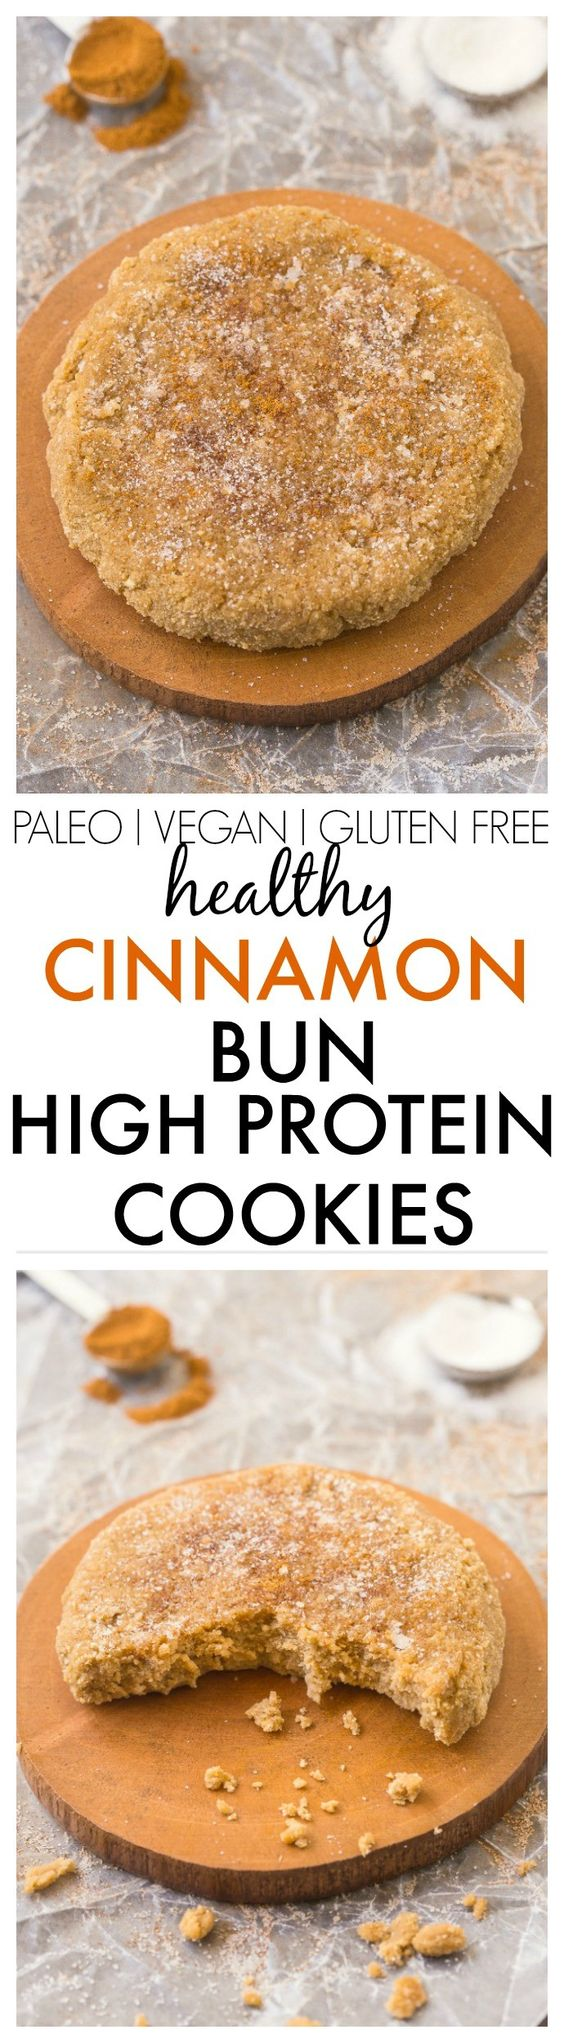 Healthy Cinnamon Bun Cookies packed with protein and 100% GRAIN FREE! NO butter, oil, grains or sugar at all! {vegan, gluten free, paleo recipe}- thebigmansworld.com